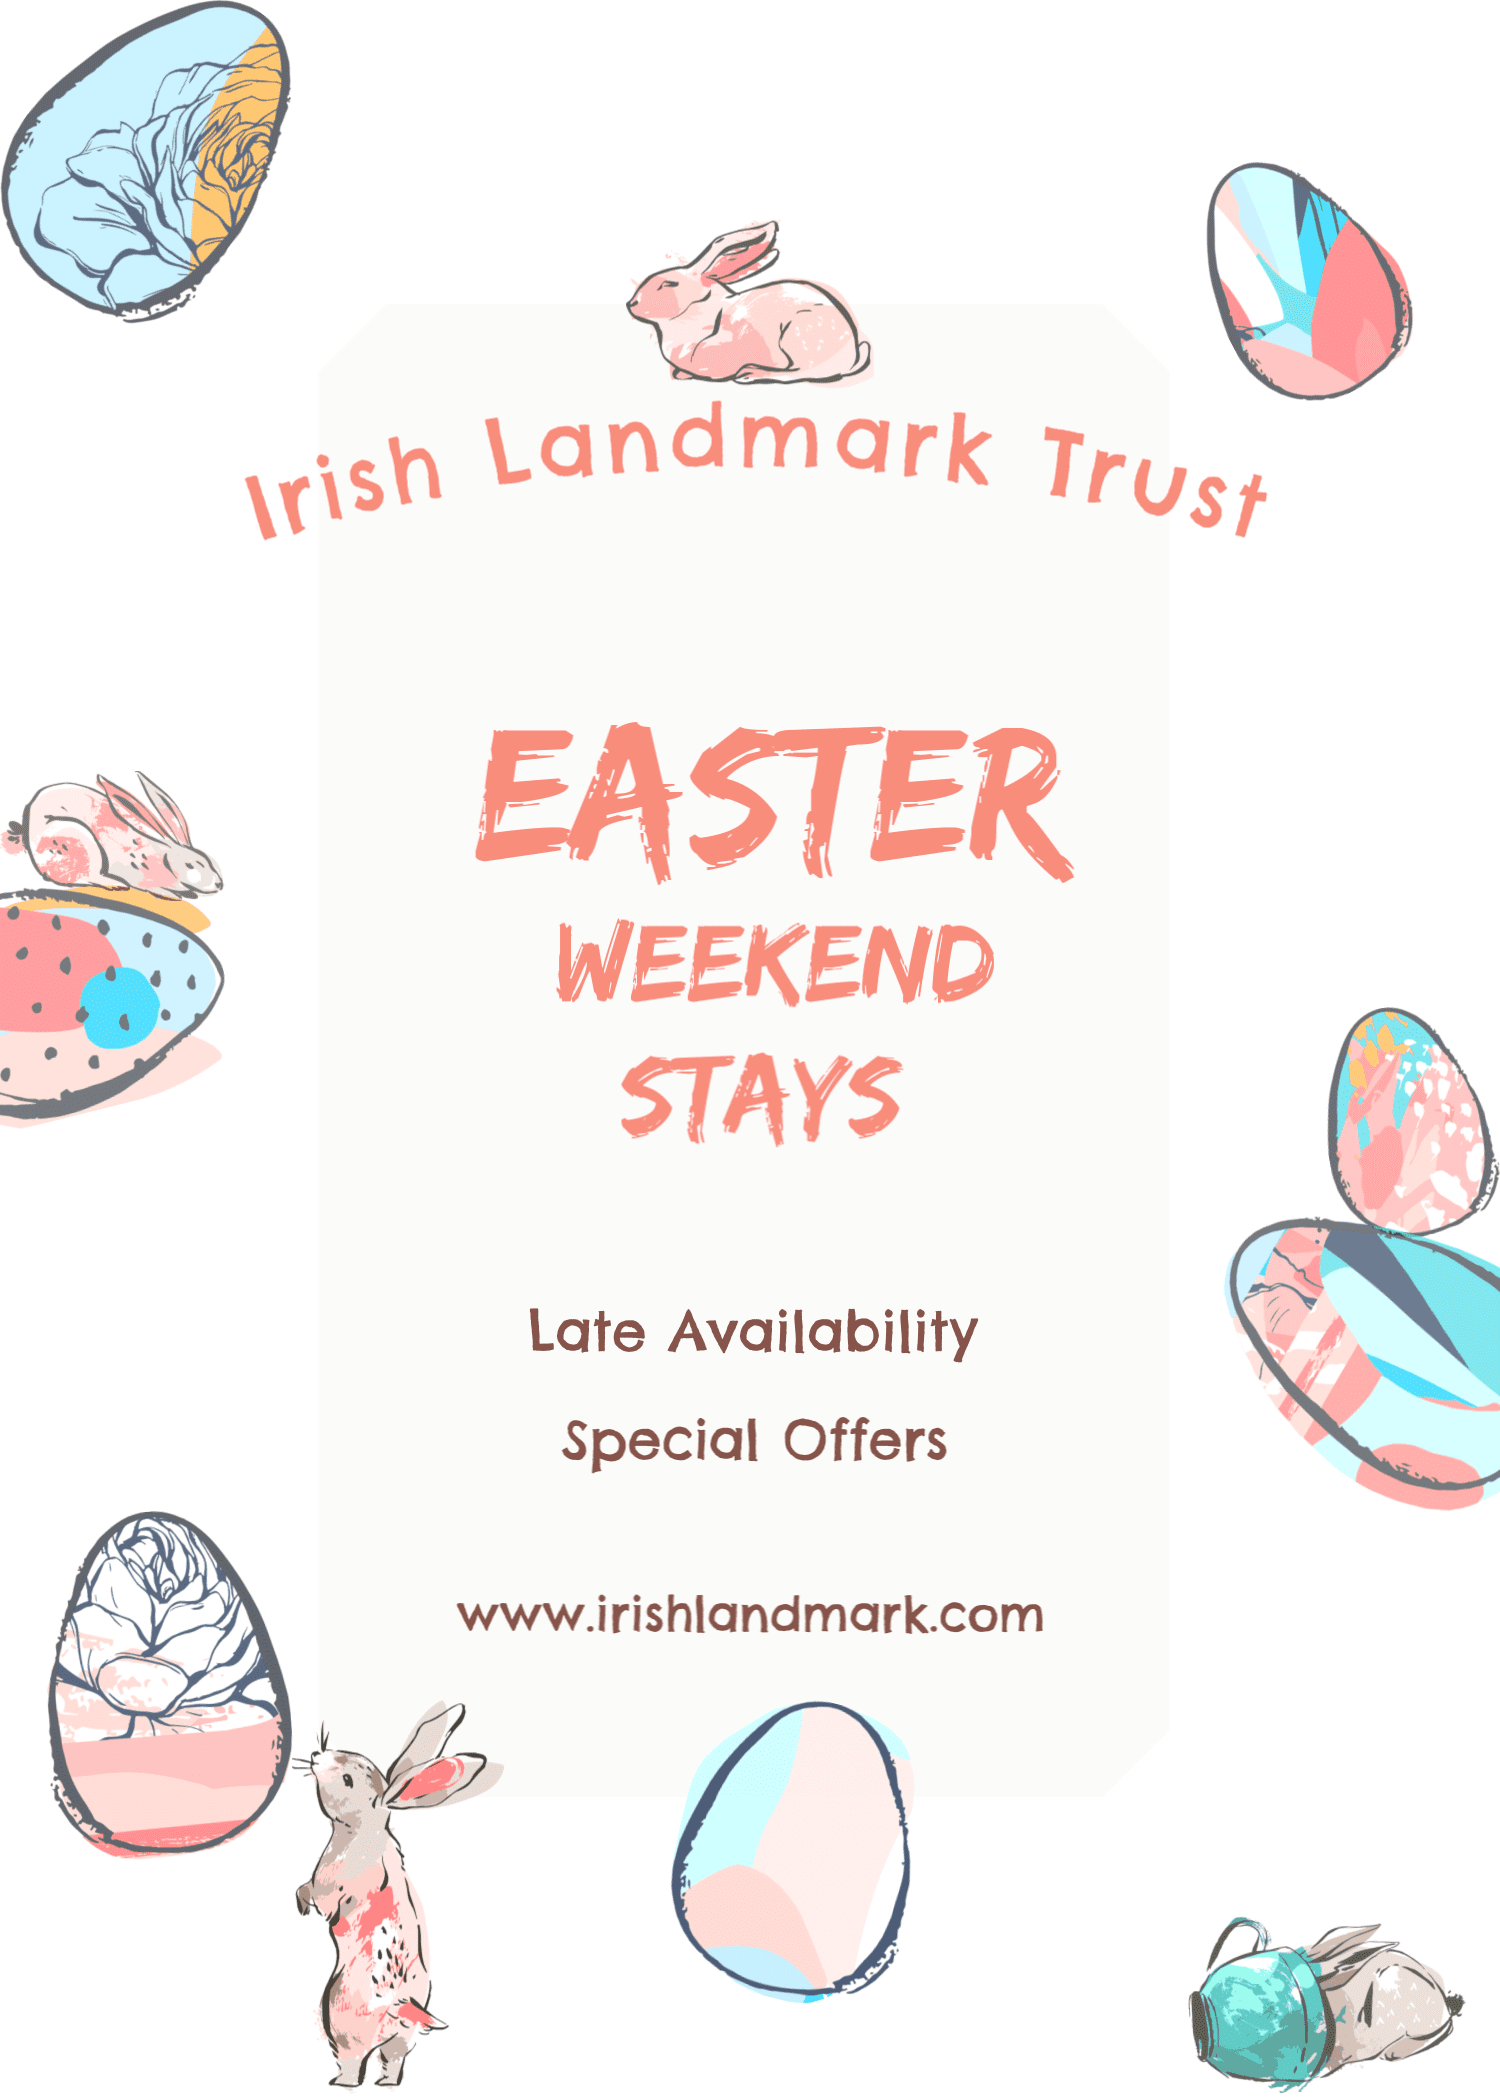 Easter Weekend 2 night stays on late availability